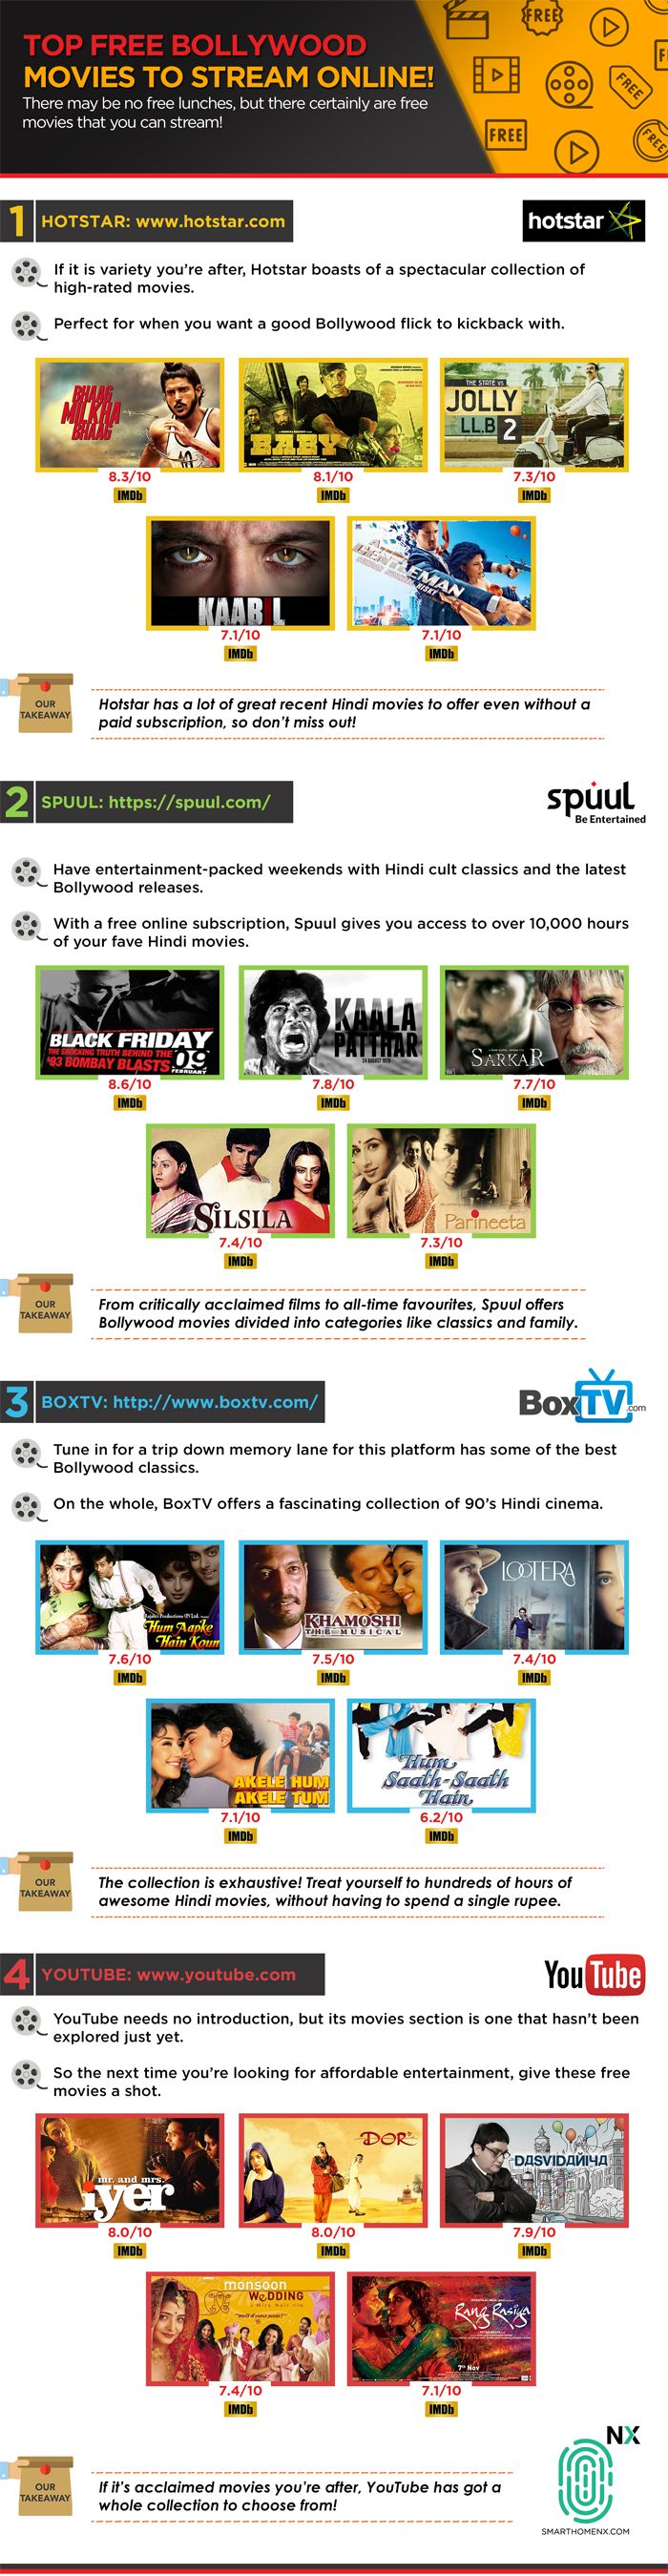 Top #Bollywood movies on India #streamingplatforms